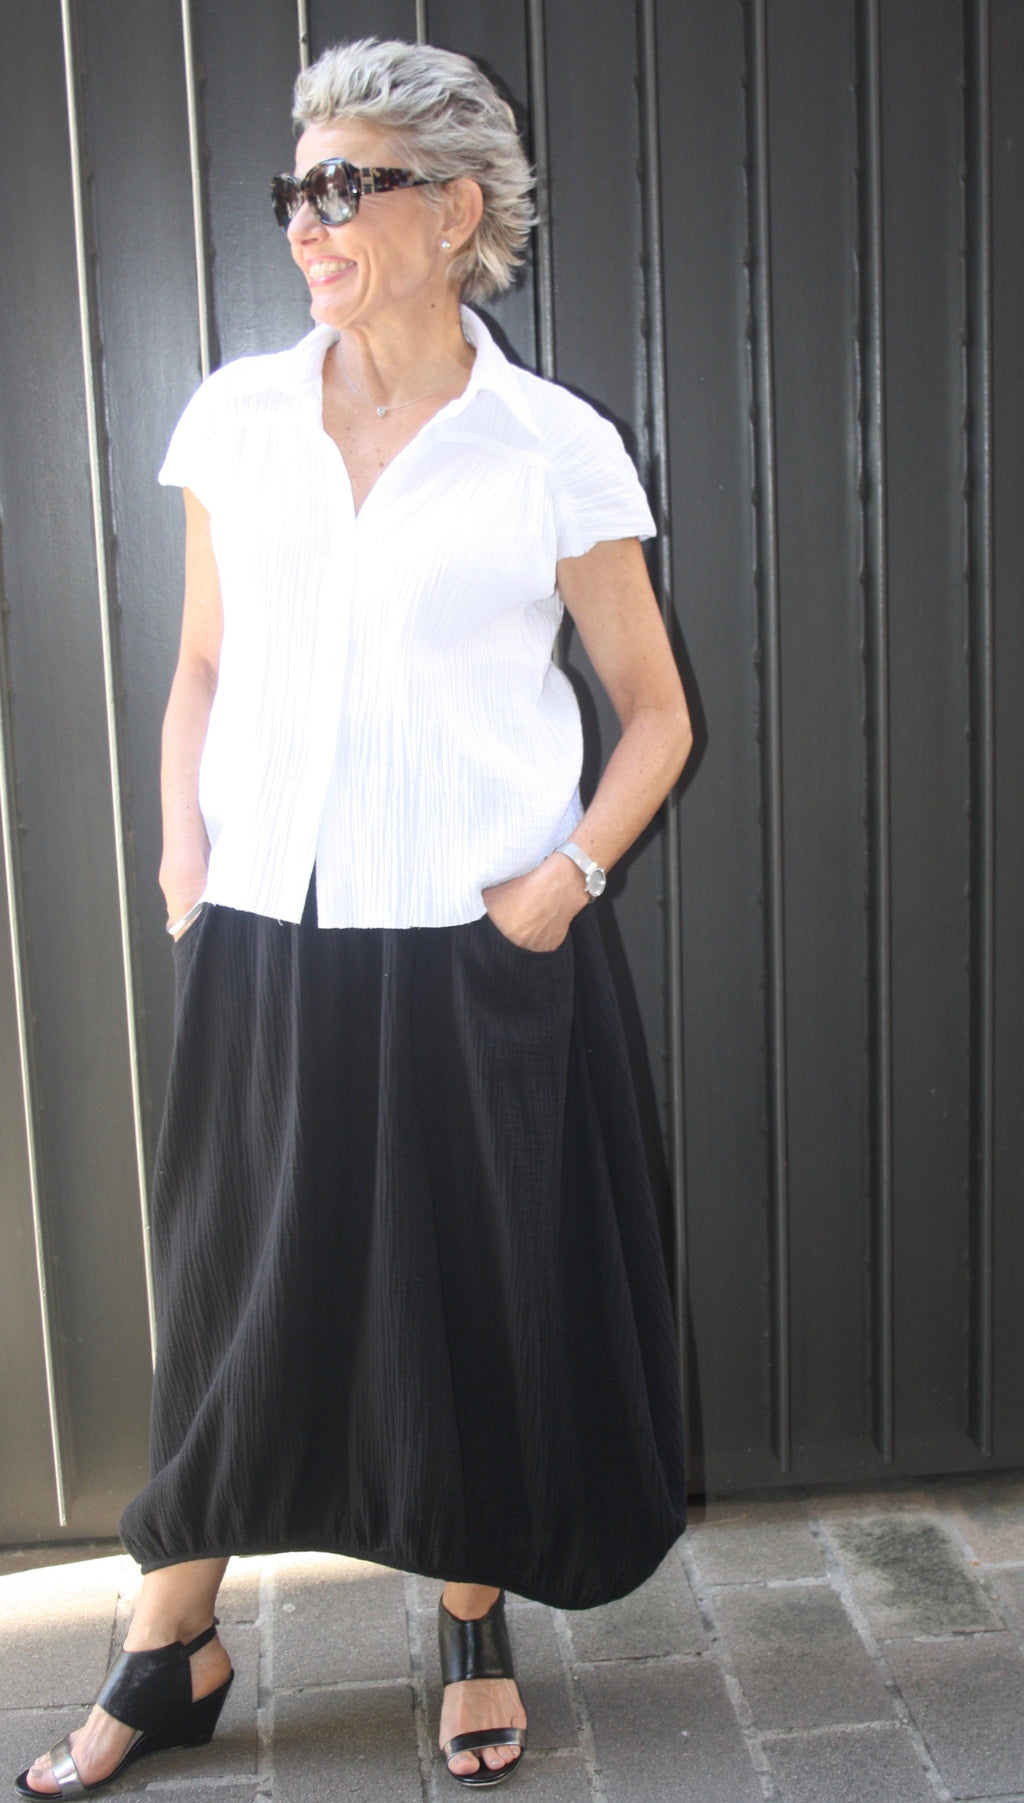 000520/ Skirt- 100% Cotton Crinkle